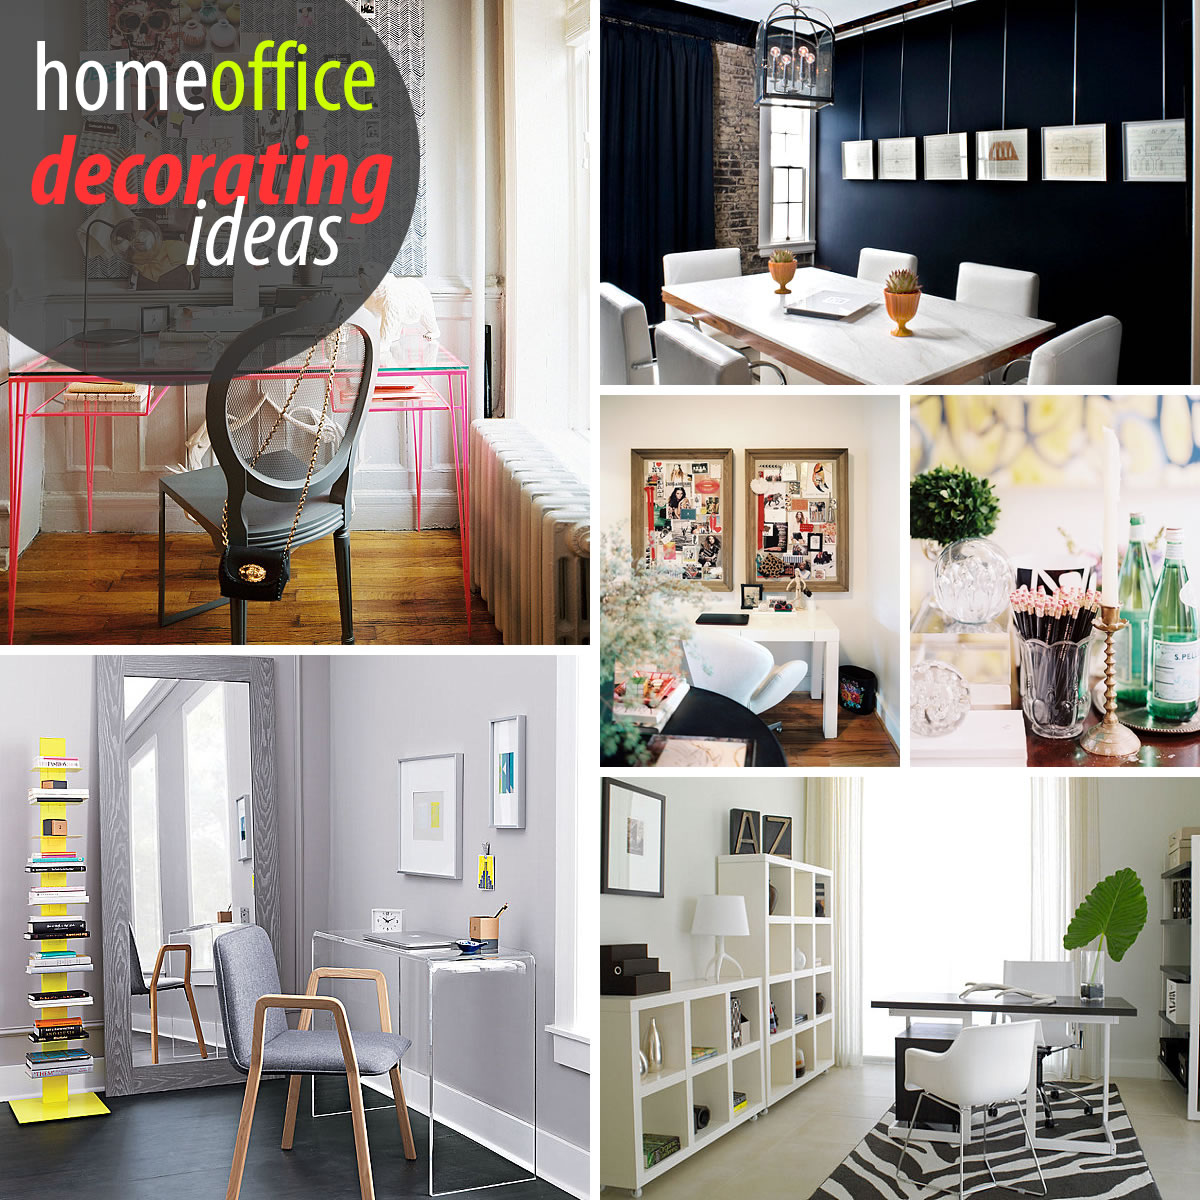 Creative home office decorating ideas for Office remodel ideas